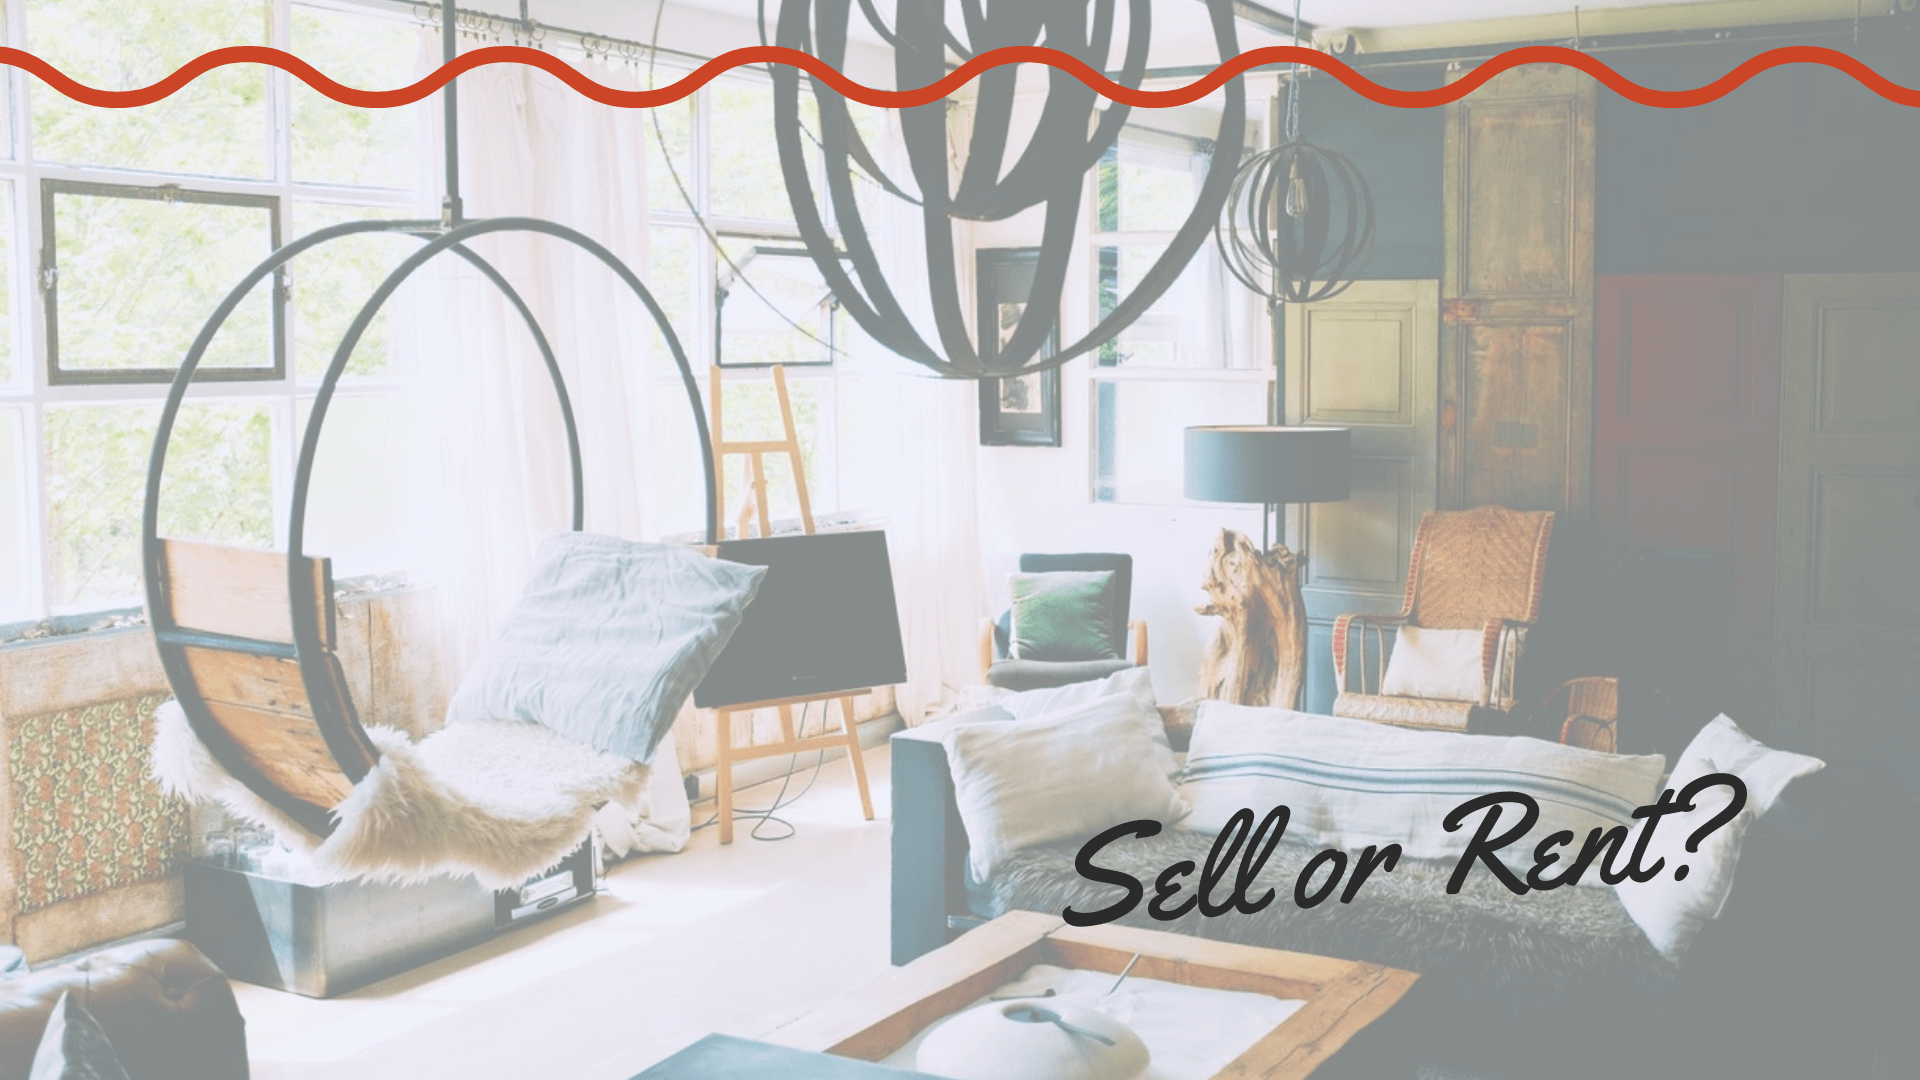 Sell or Rent: What's the Best Decision for Your Grand Rapids Home? - article banner